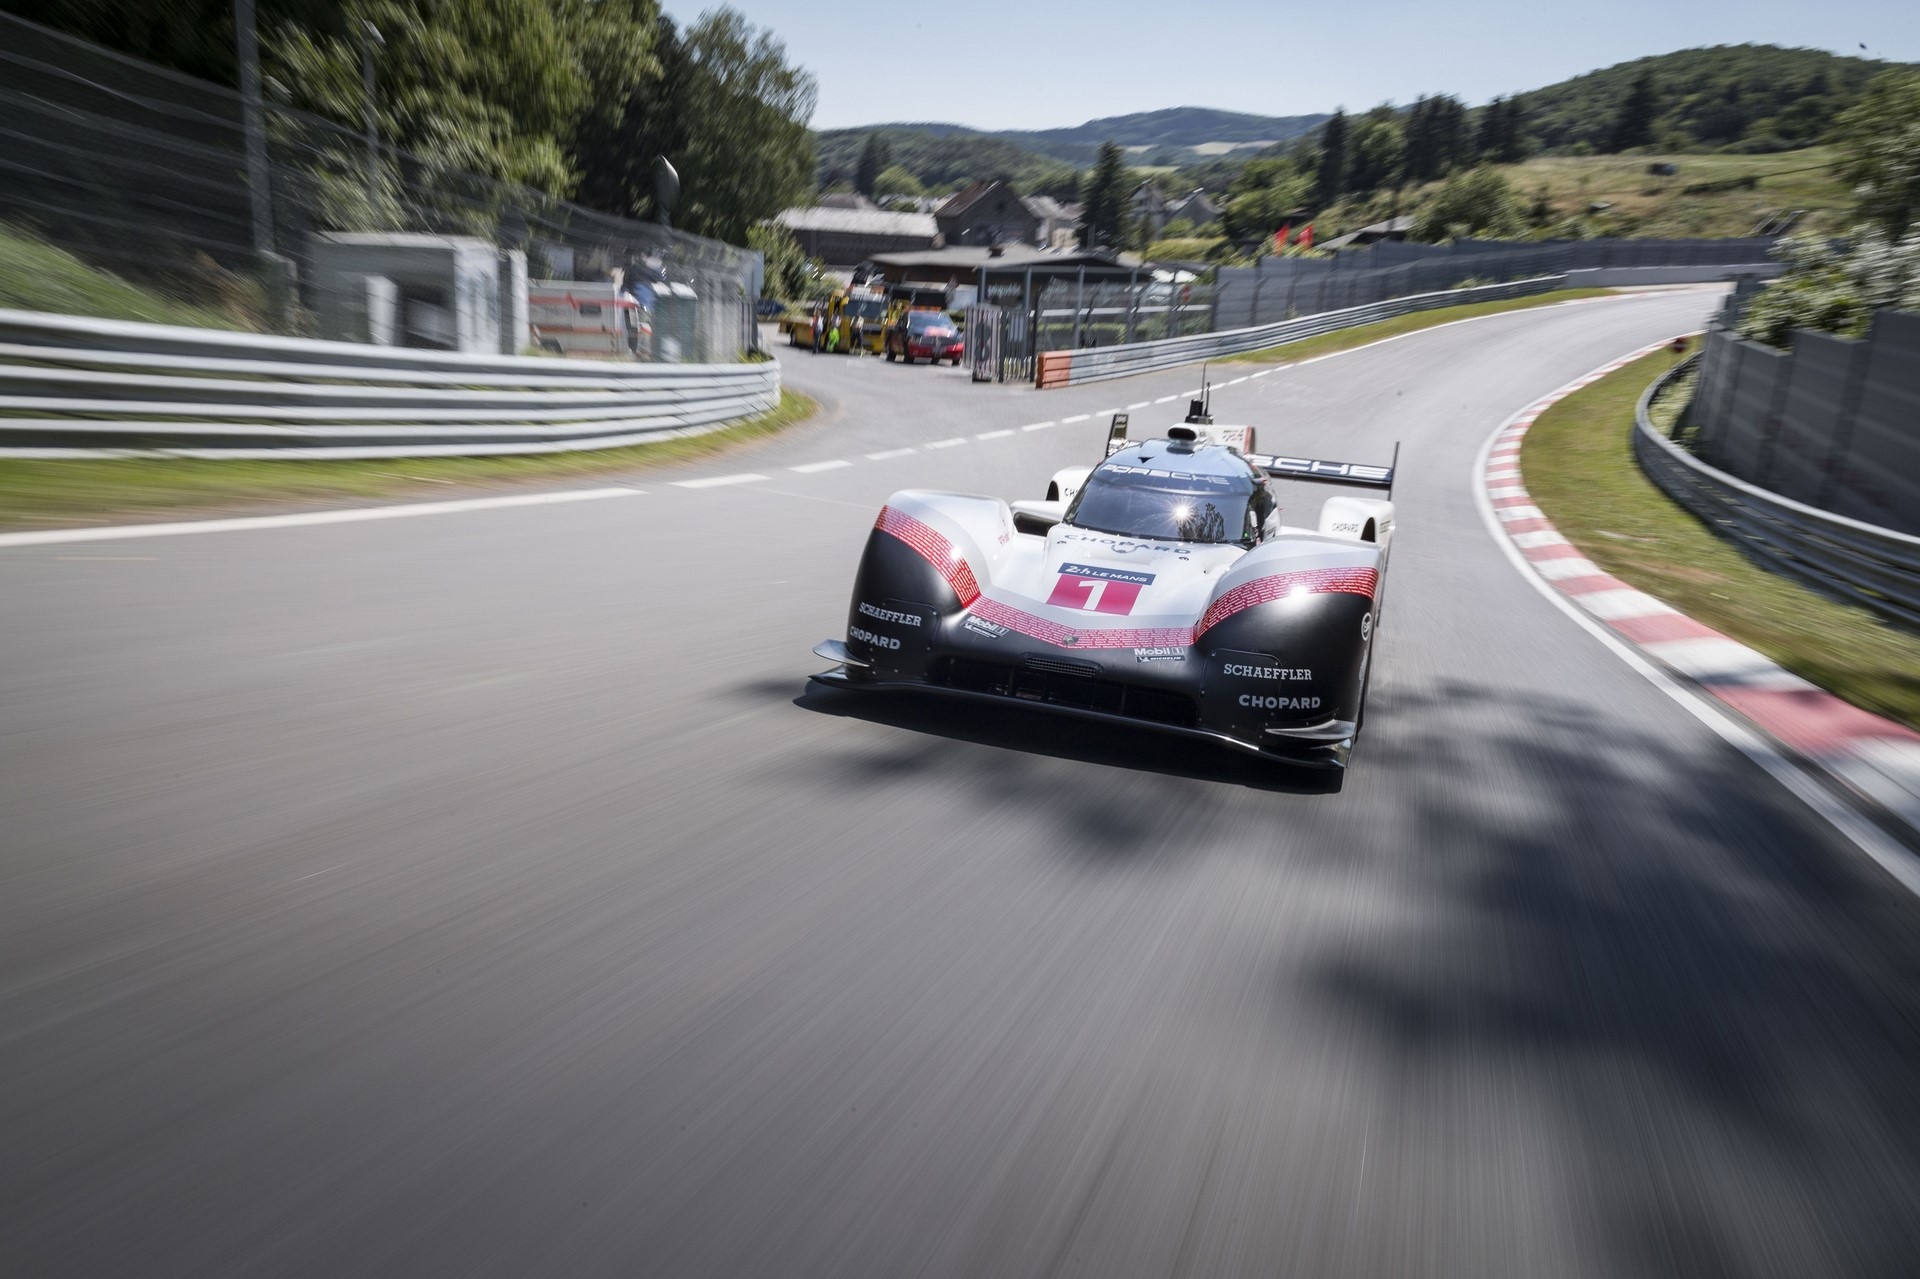 porsche-919-ring-lap-record-005-1